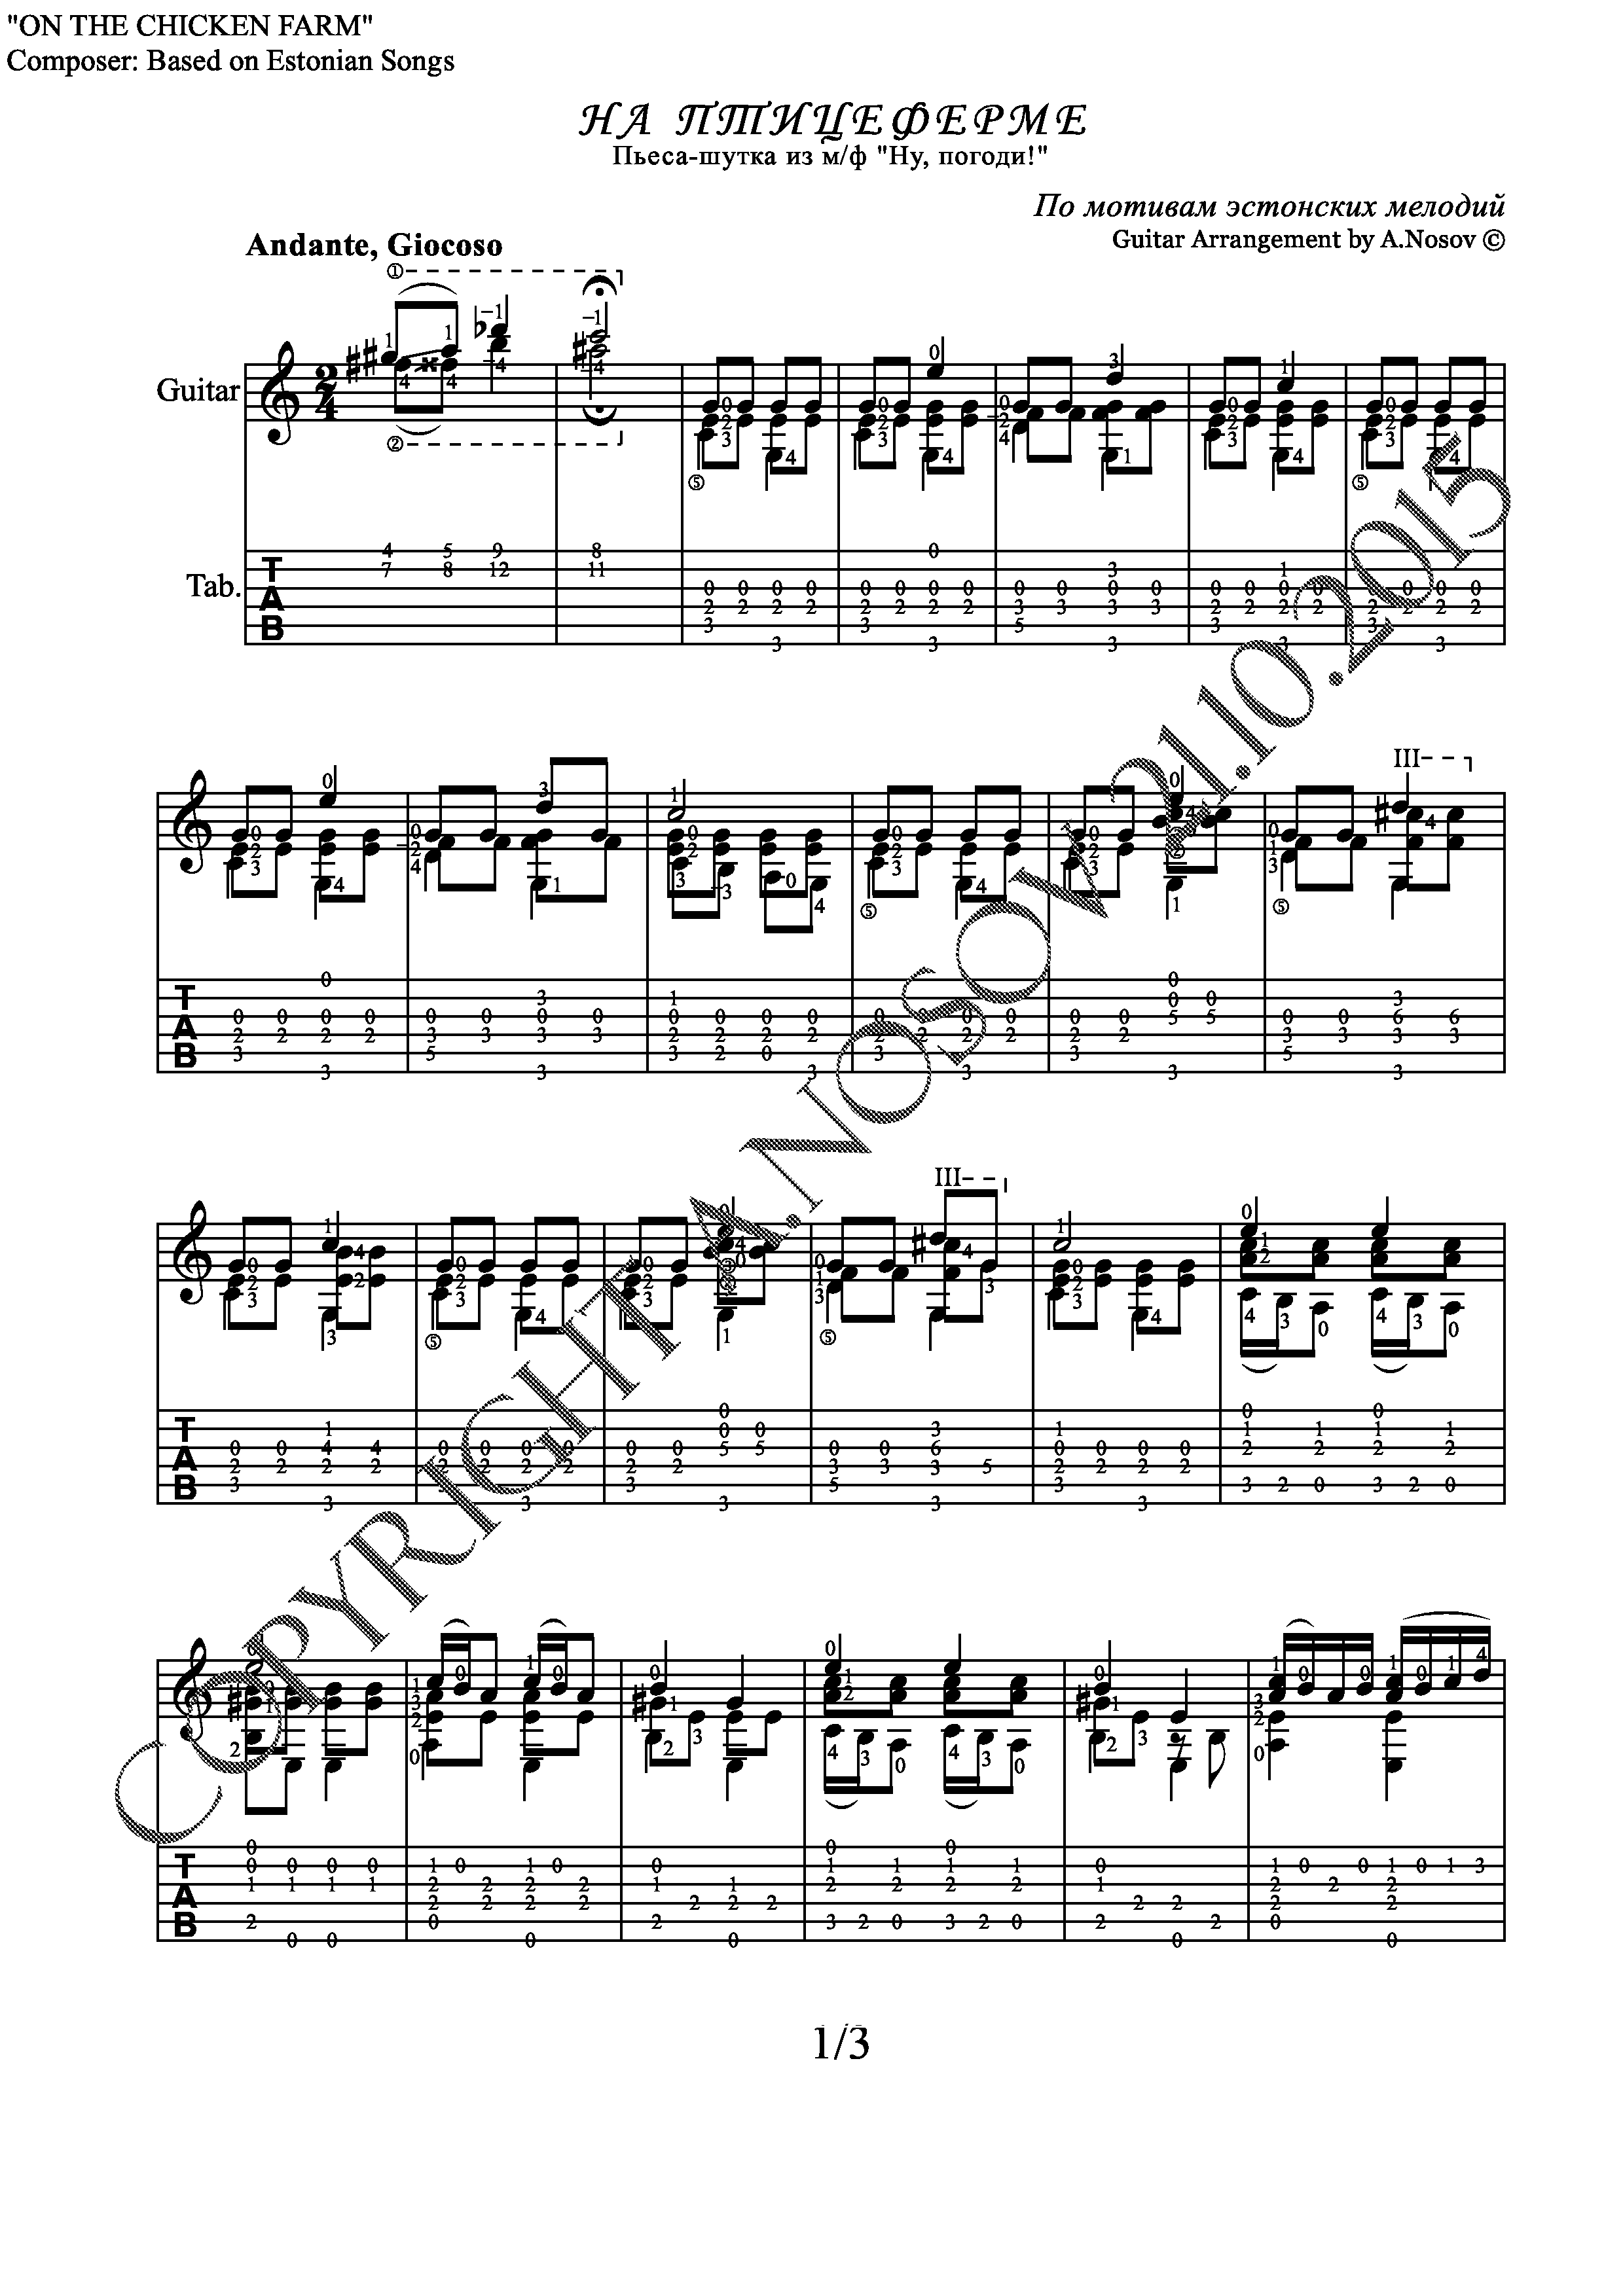 On the Chicken Farm (Sheet music and tabs for guitar)